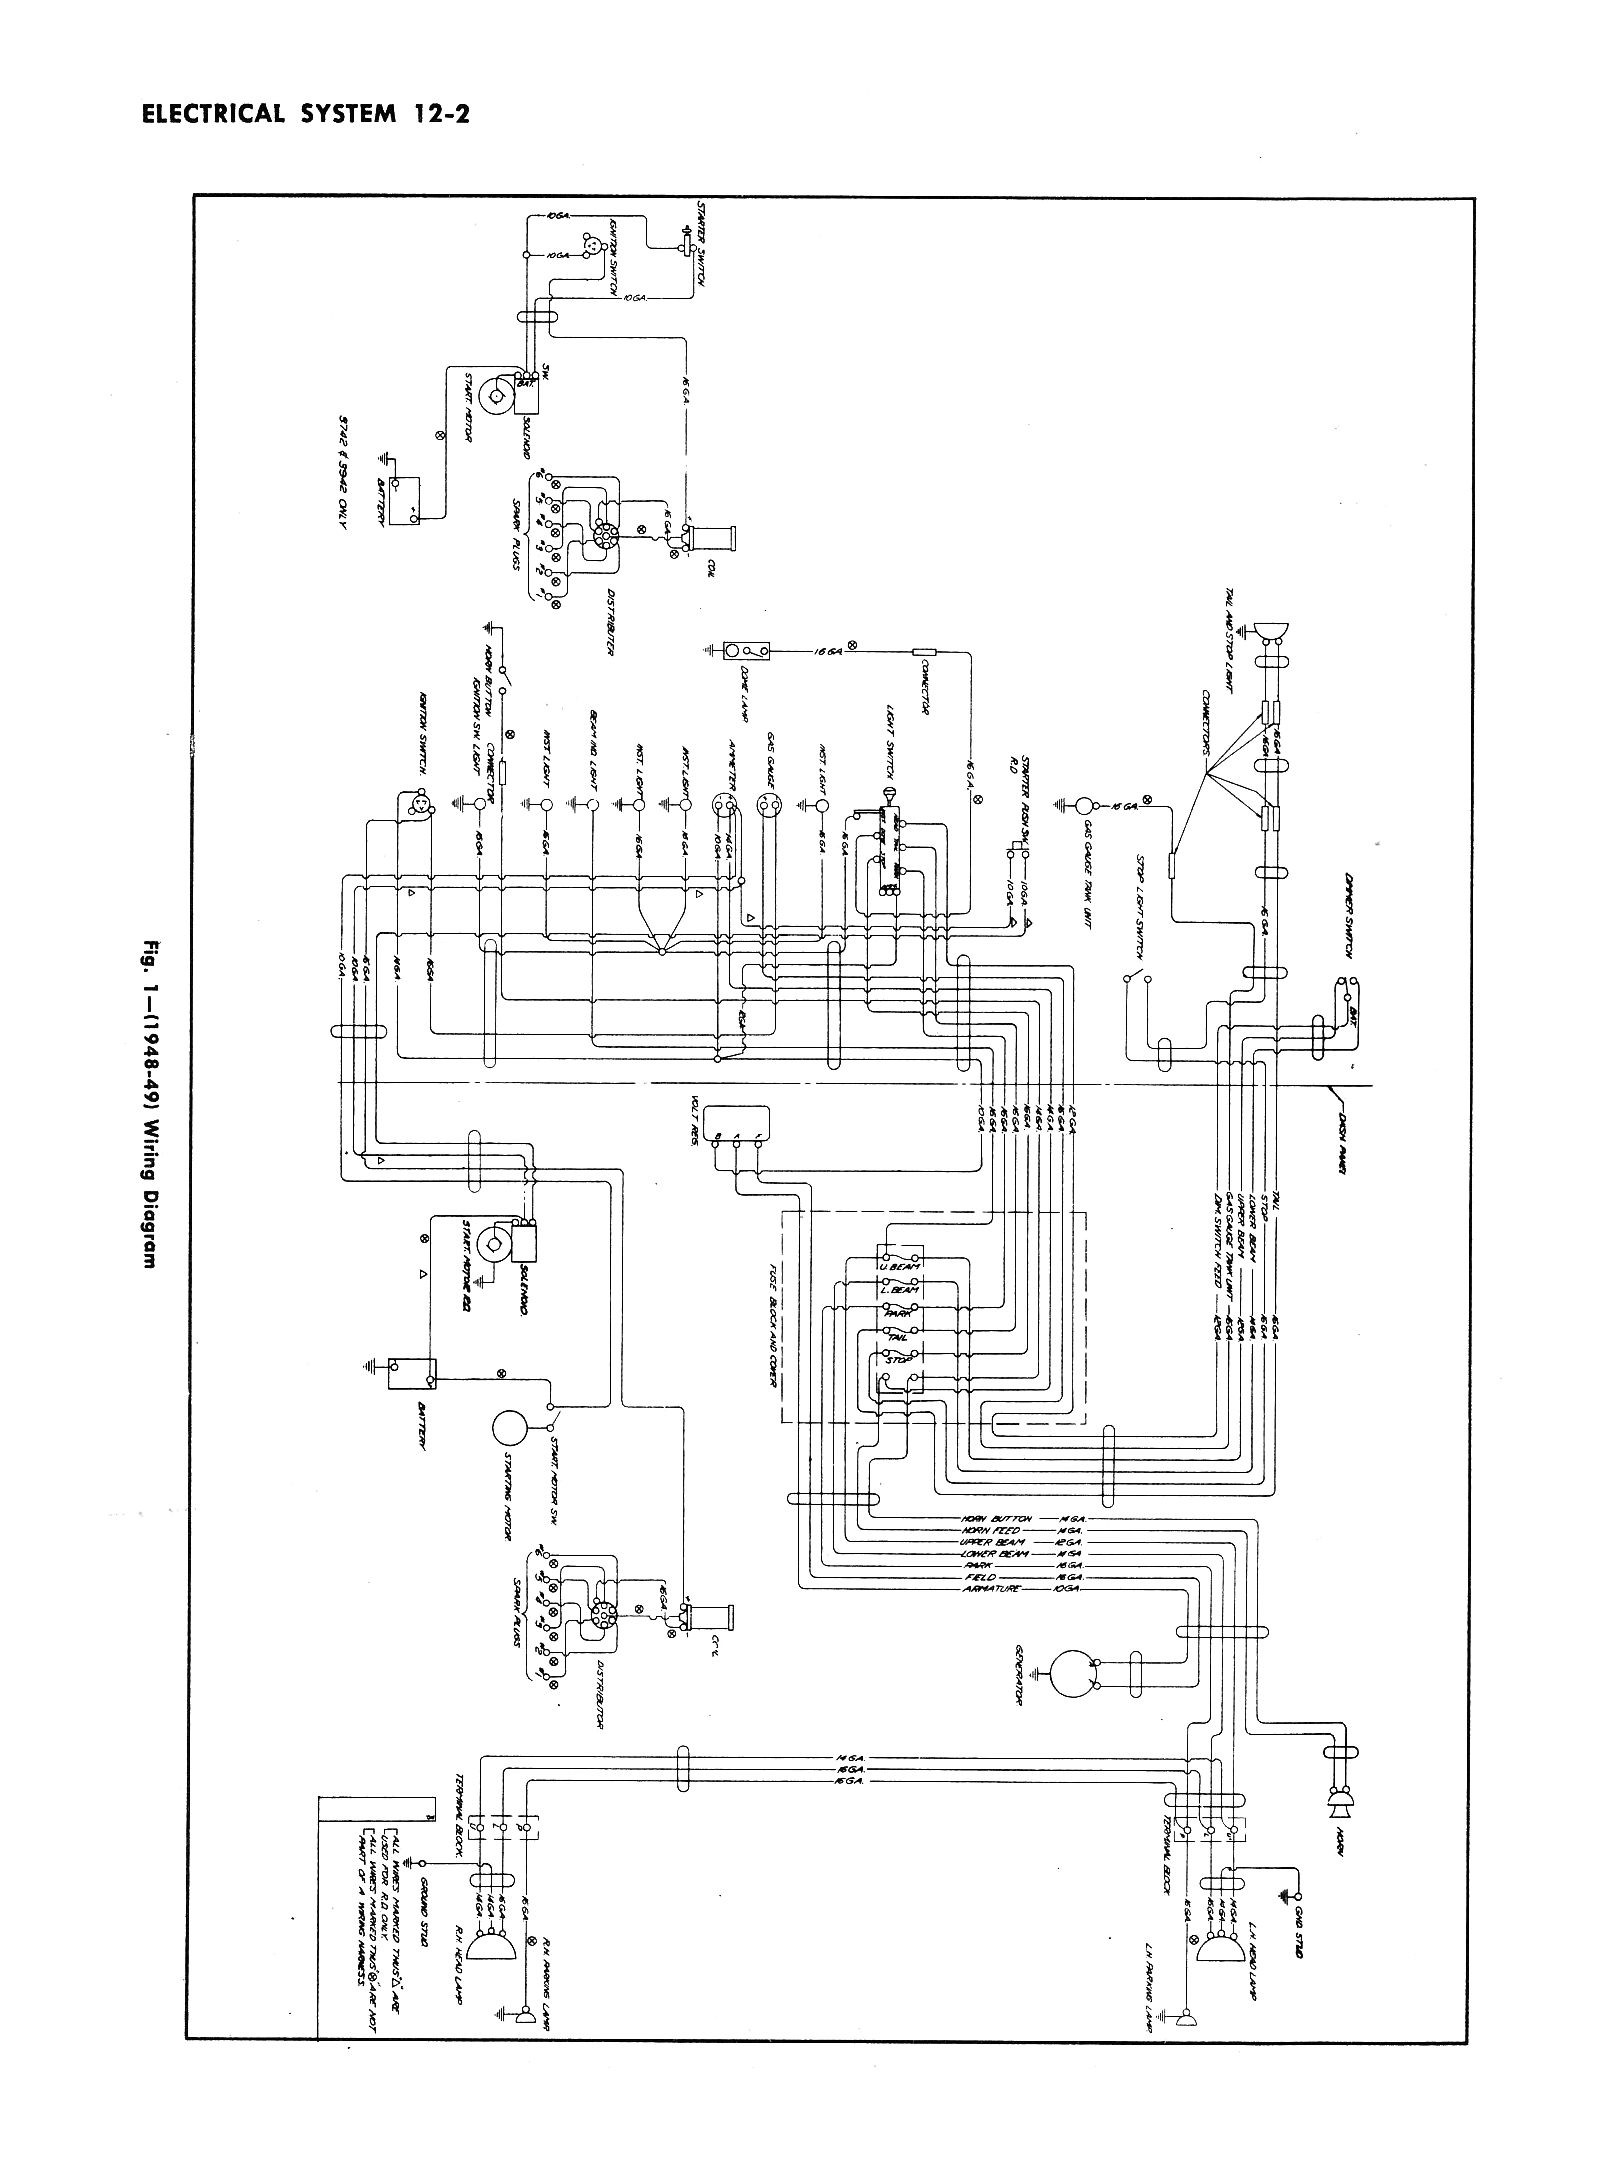 1948 chevy wiring diagram block and schematic diagrams u2022 rh lazysupply co 1948 chevy pickup wiring diagram